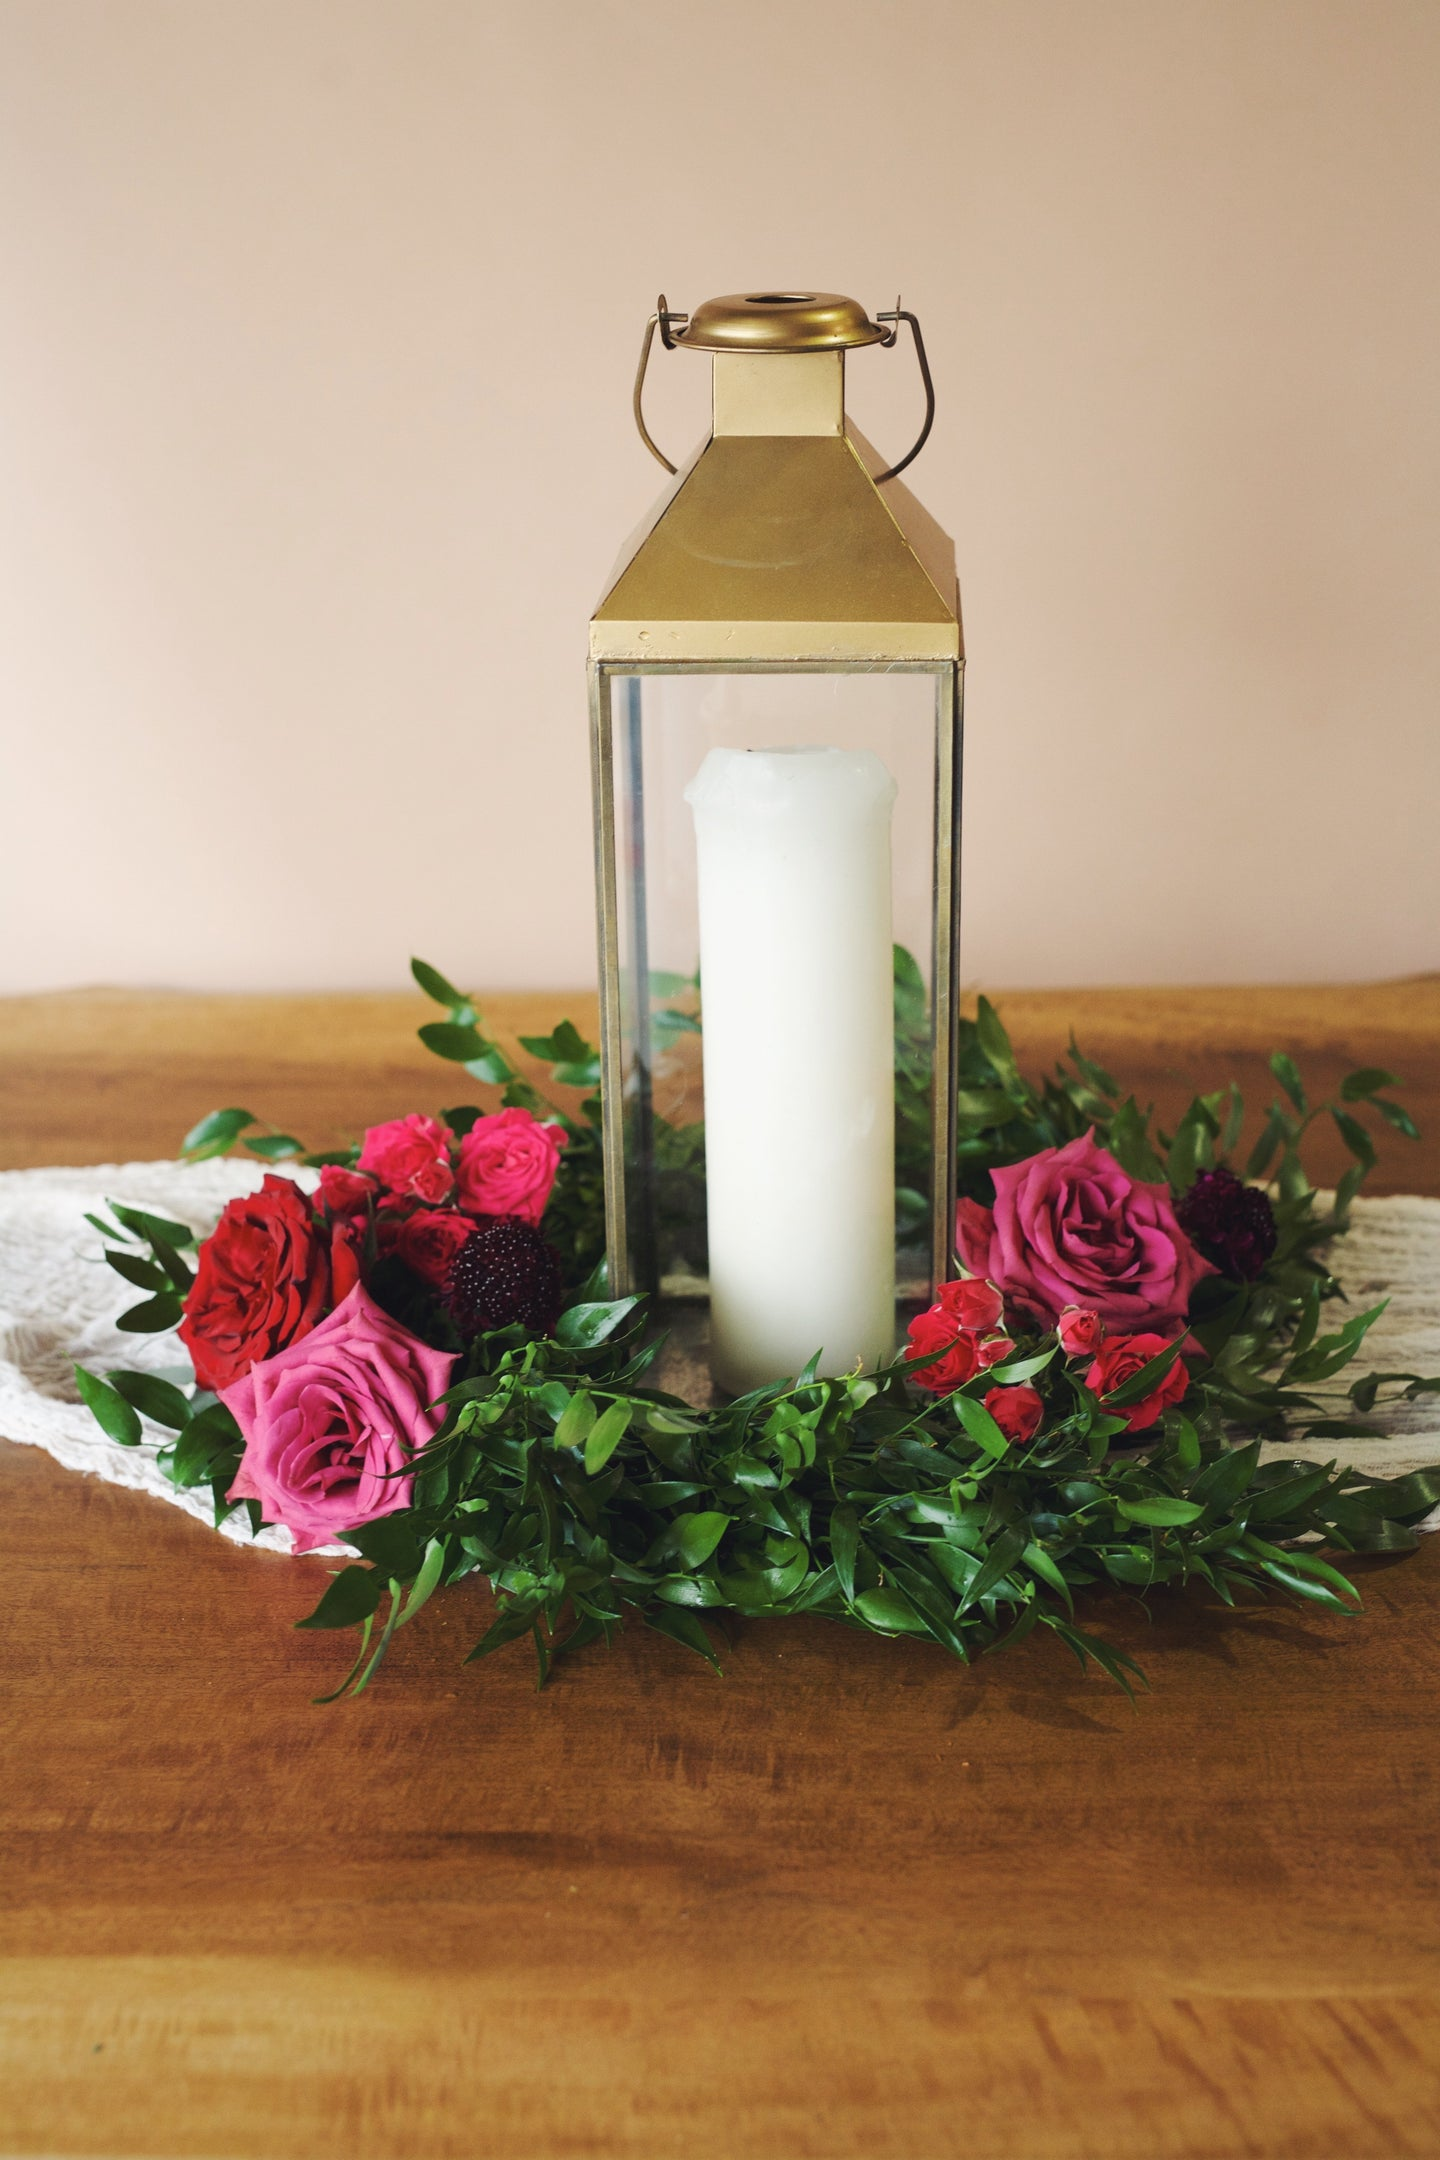 Aria Table Wreath with Flowers